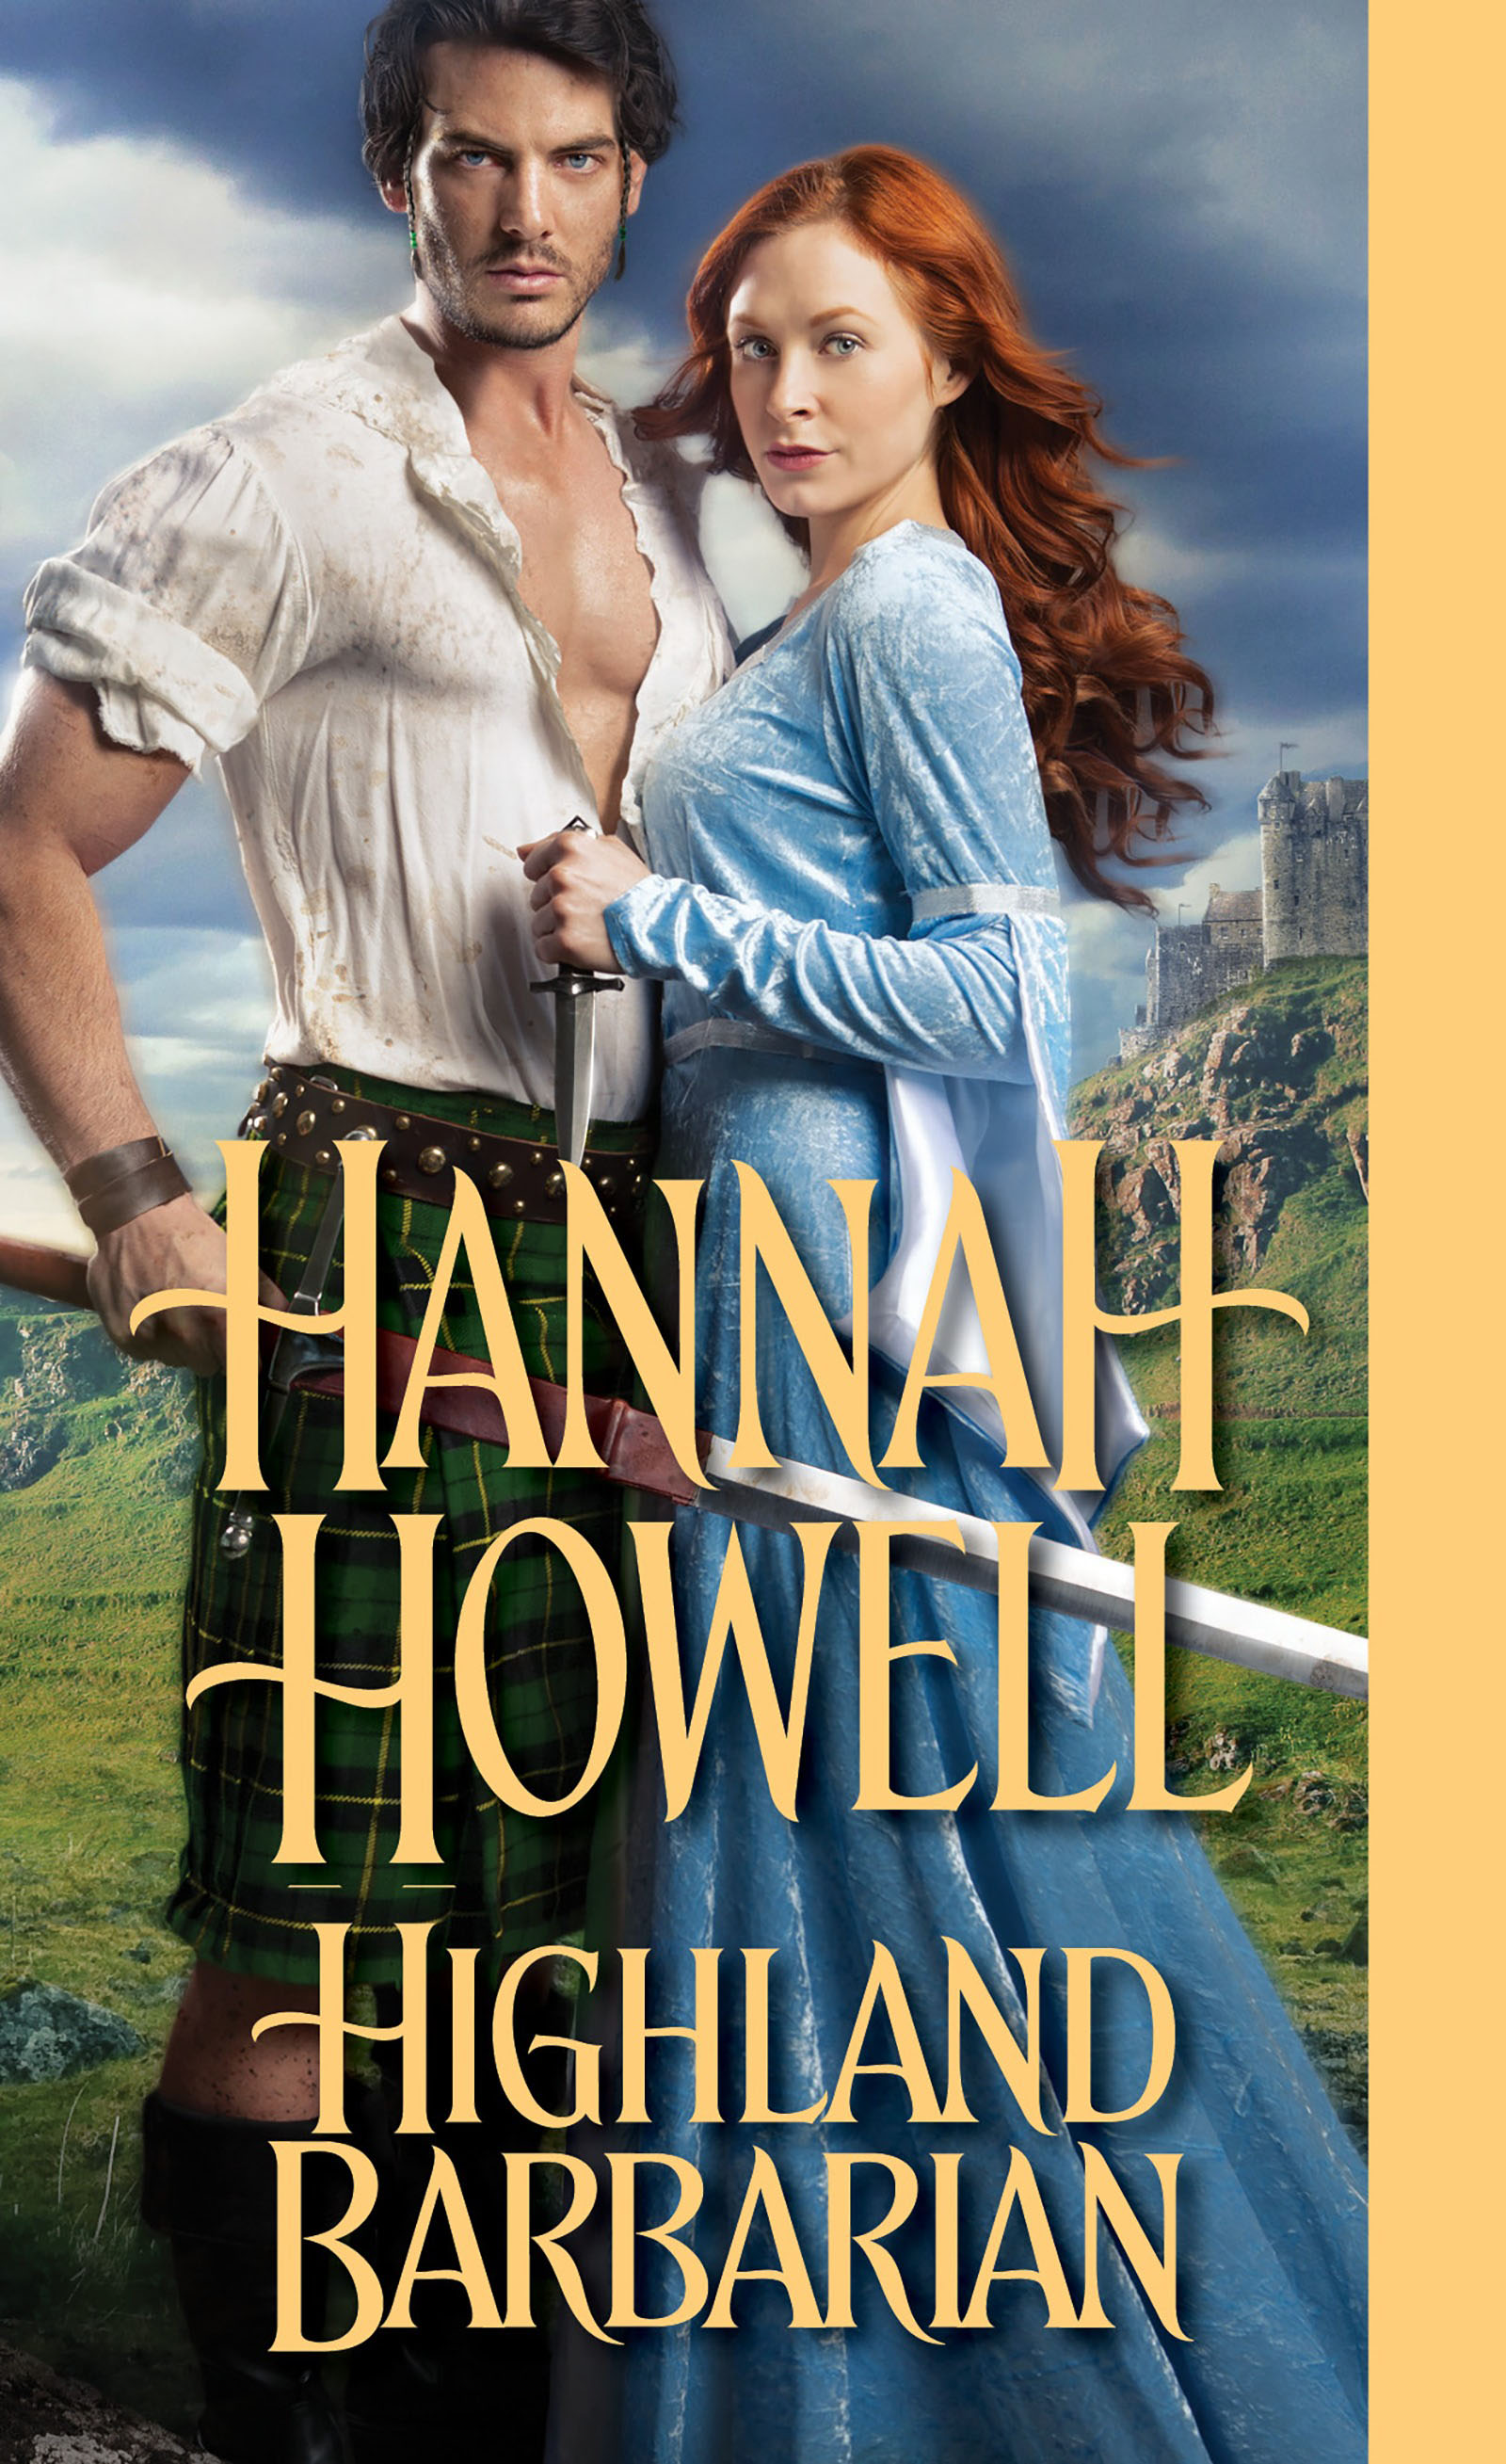 Highland Barbarian the highland fling murders